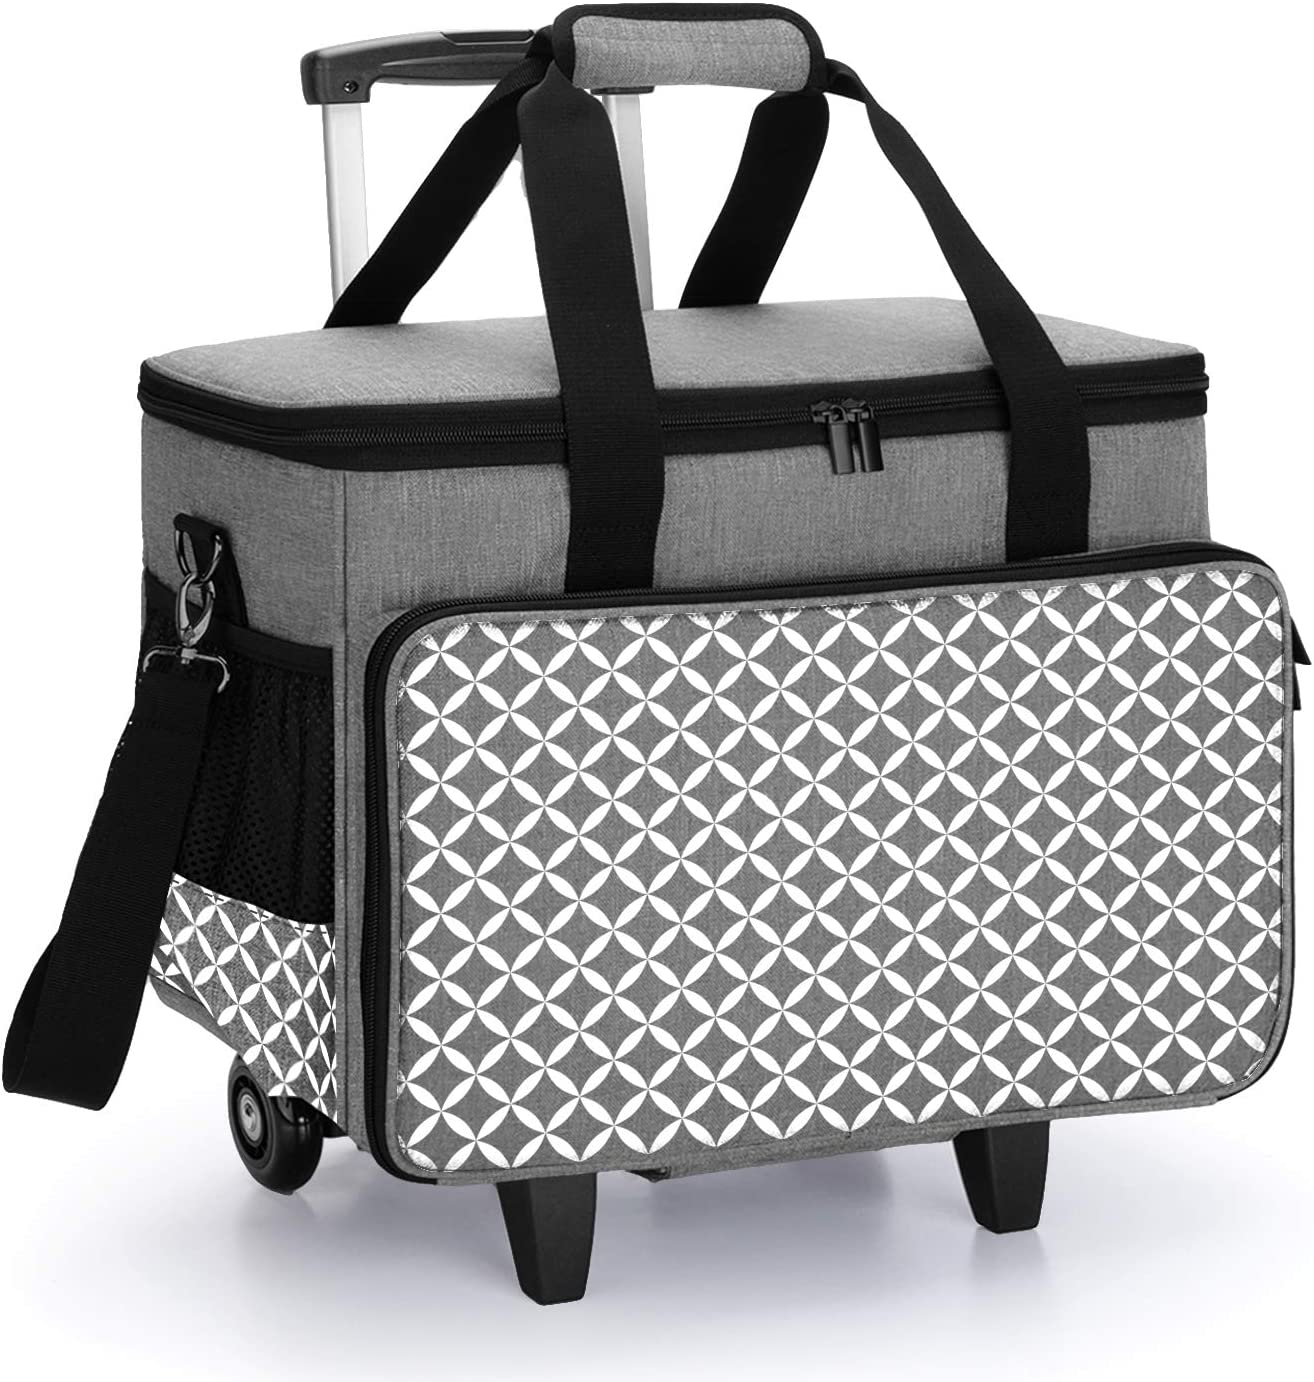 Yarwo Rolling Scrapbook Tote Bag with Wheels Detachable Trolley Craft Carrying Case with Removable Bottom Wooden Board for Scrapbooking and Crafting Gray with Arrow